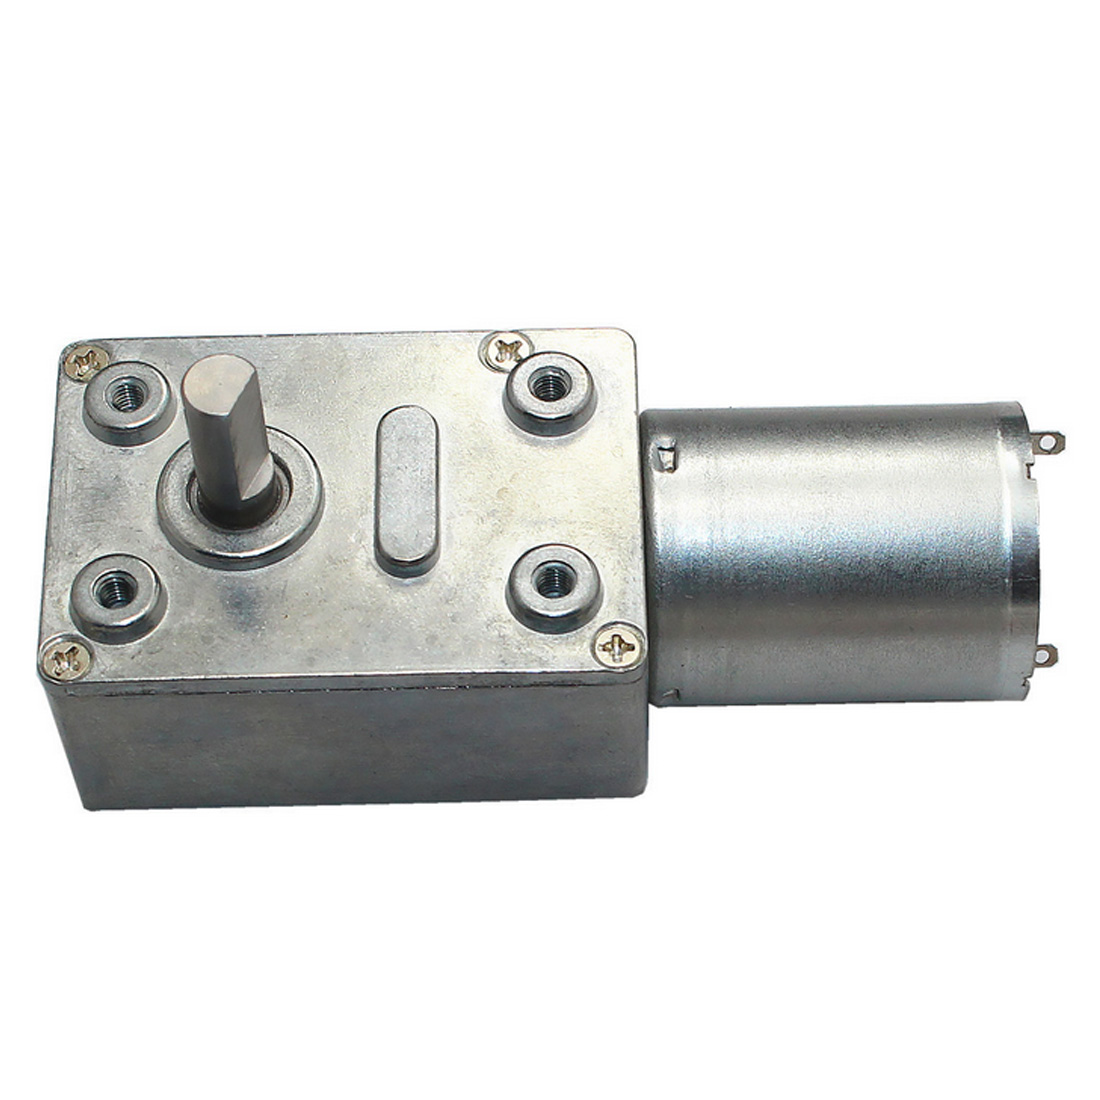 12V//DC Micro 10RPM High Torque Turbine Electric Worm Gearbox Reduction Motor